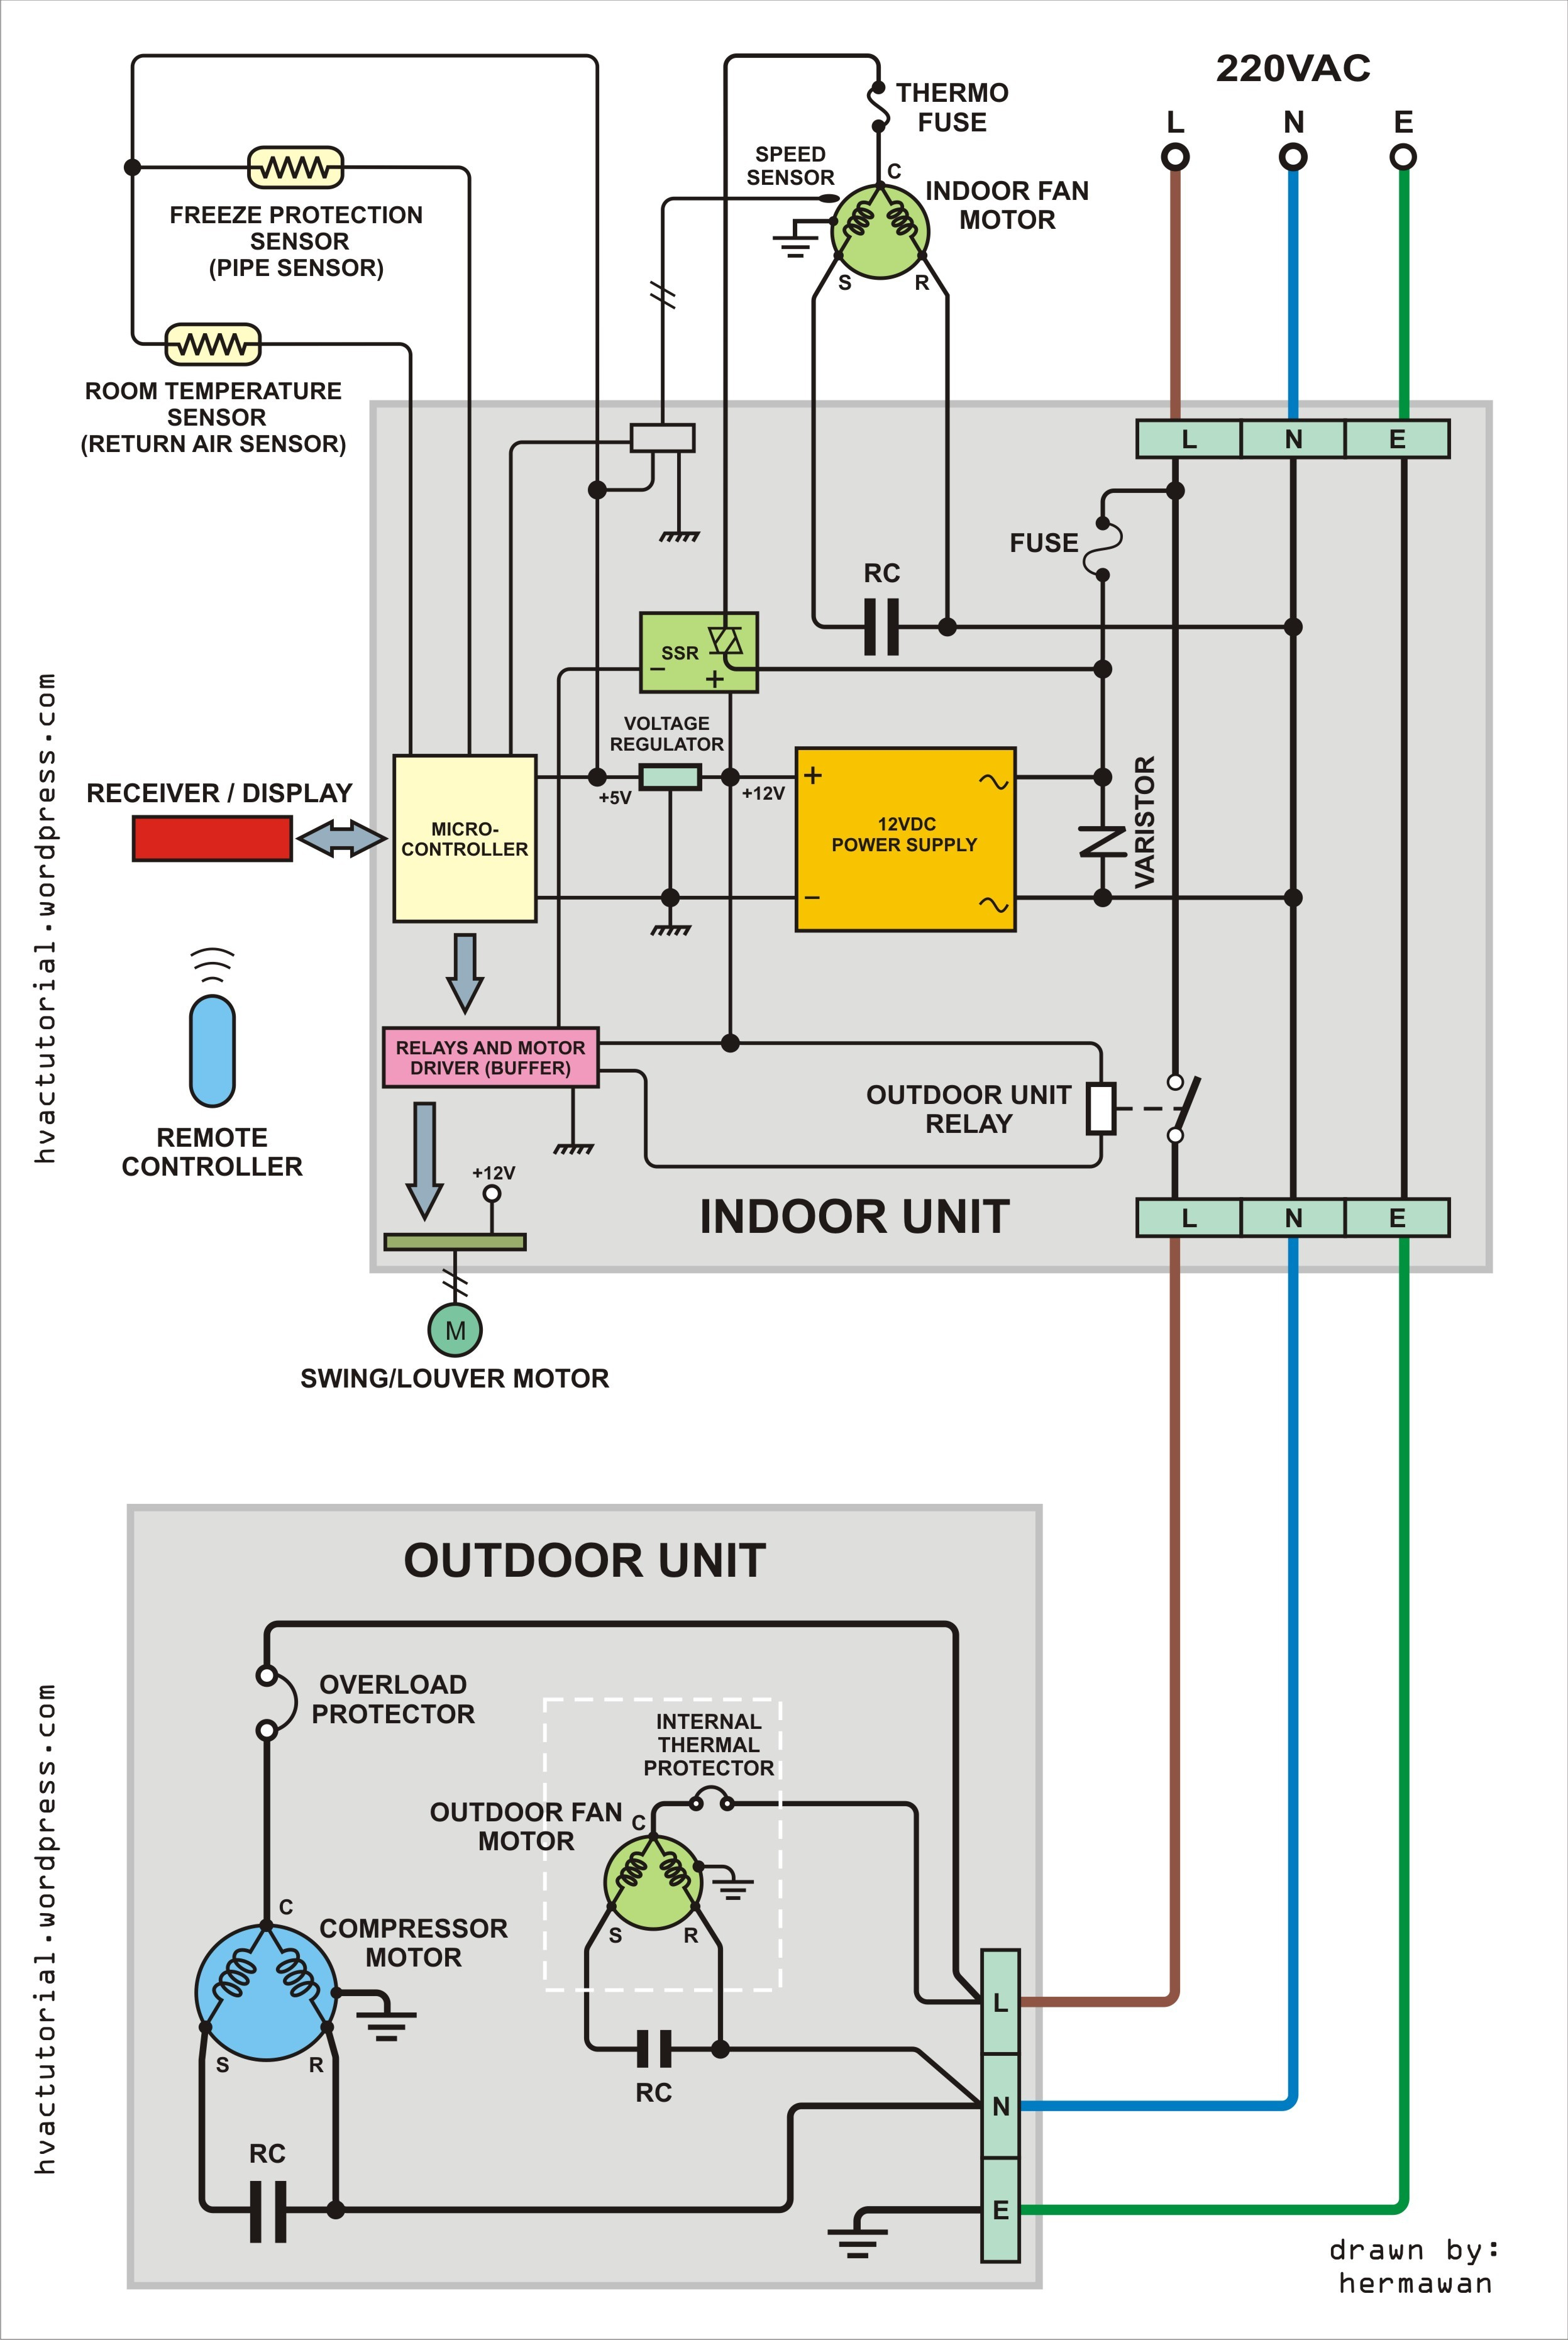 Home Central Air Wiring Diagram Wire Center Within Conditioner - Central Air Conditioner Wiring Diagram